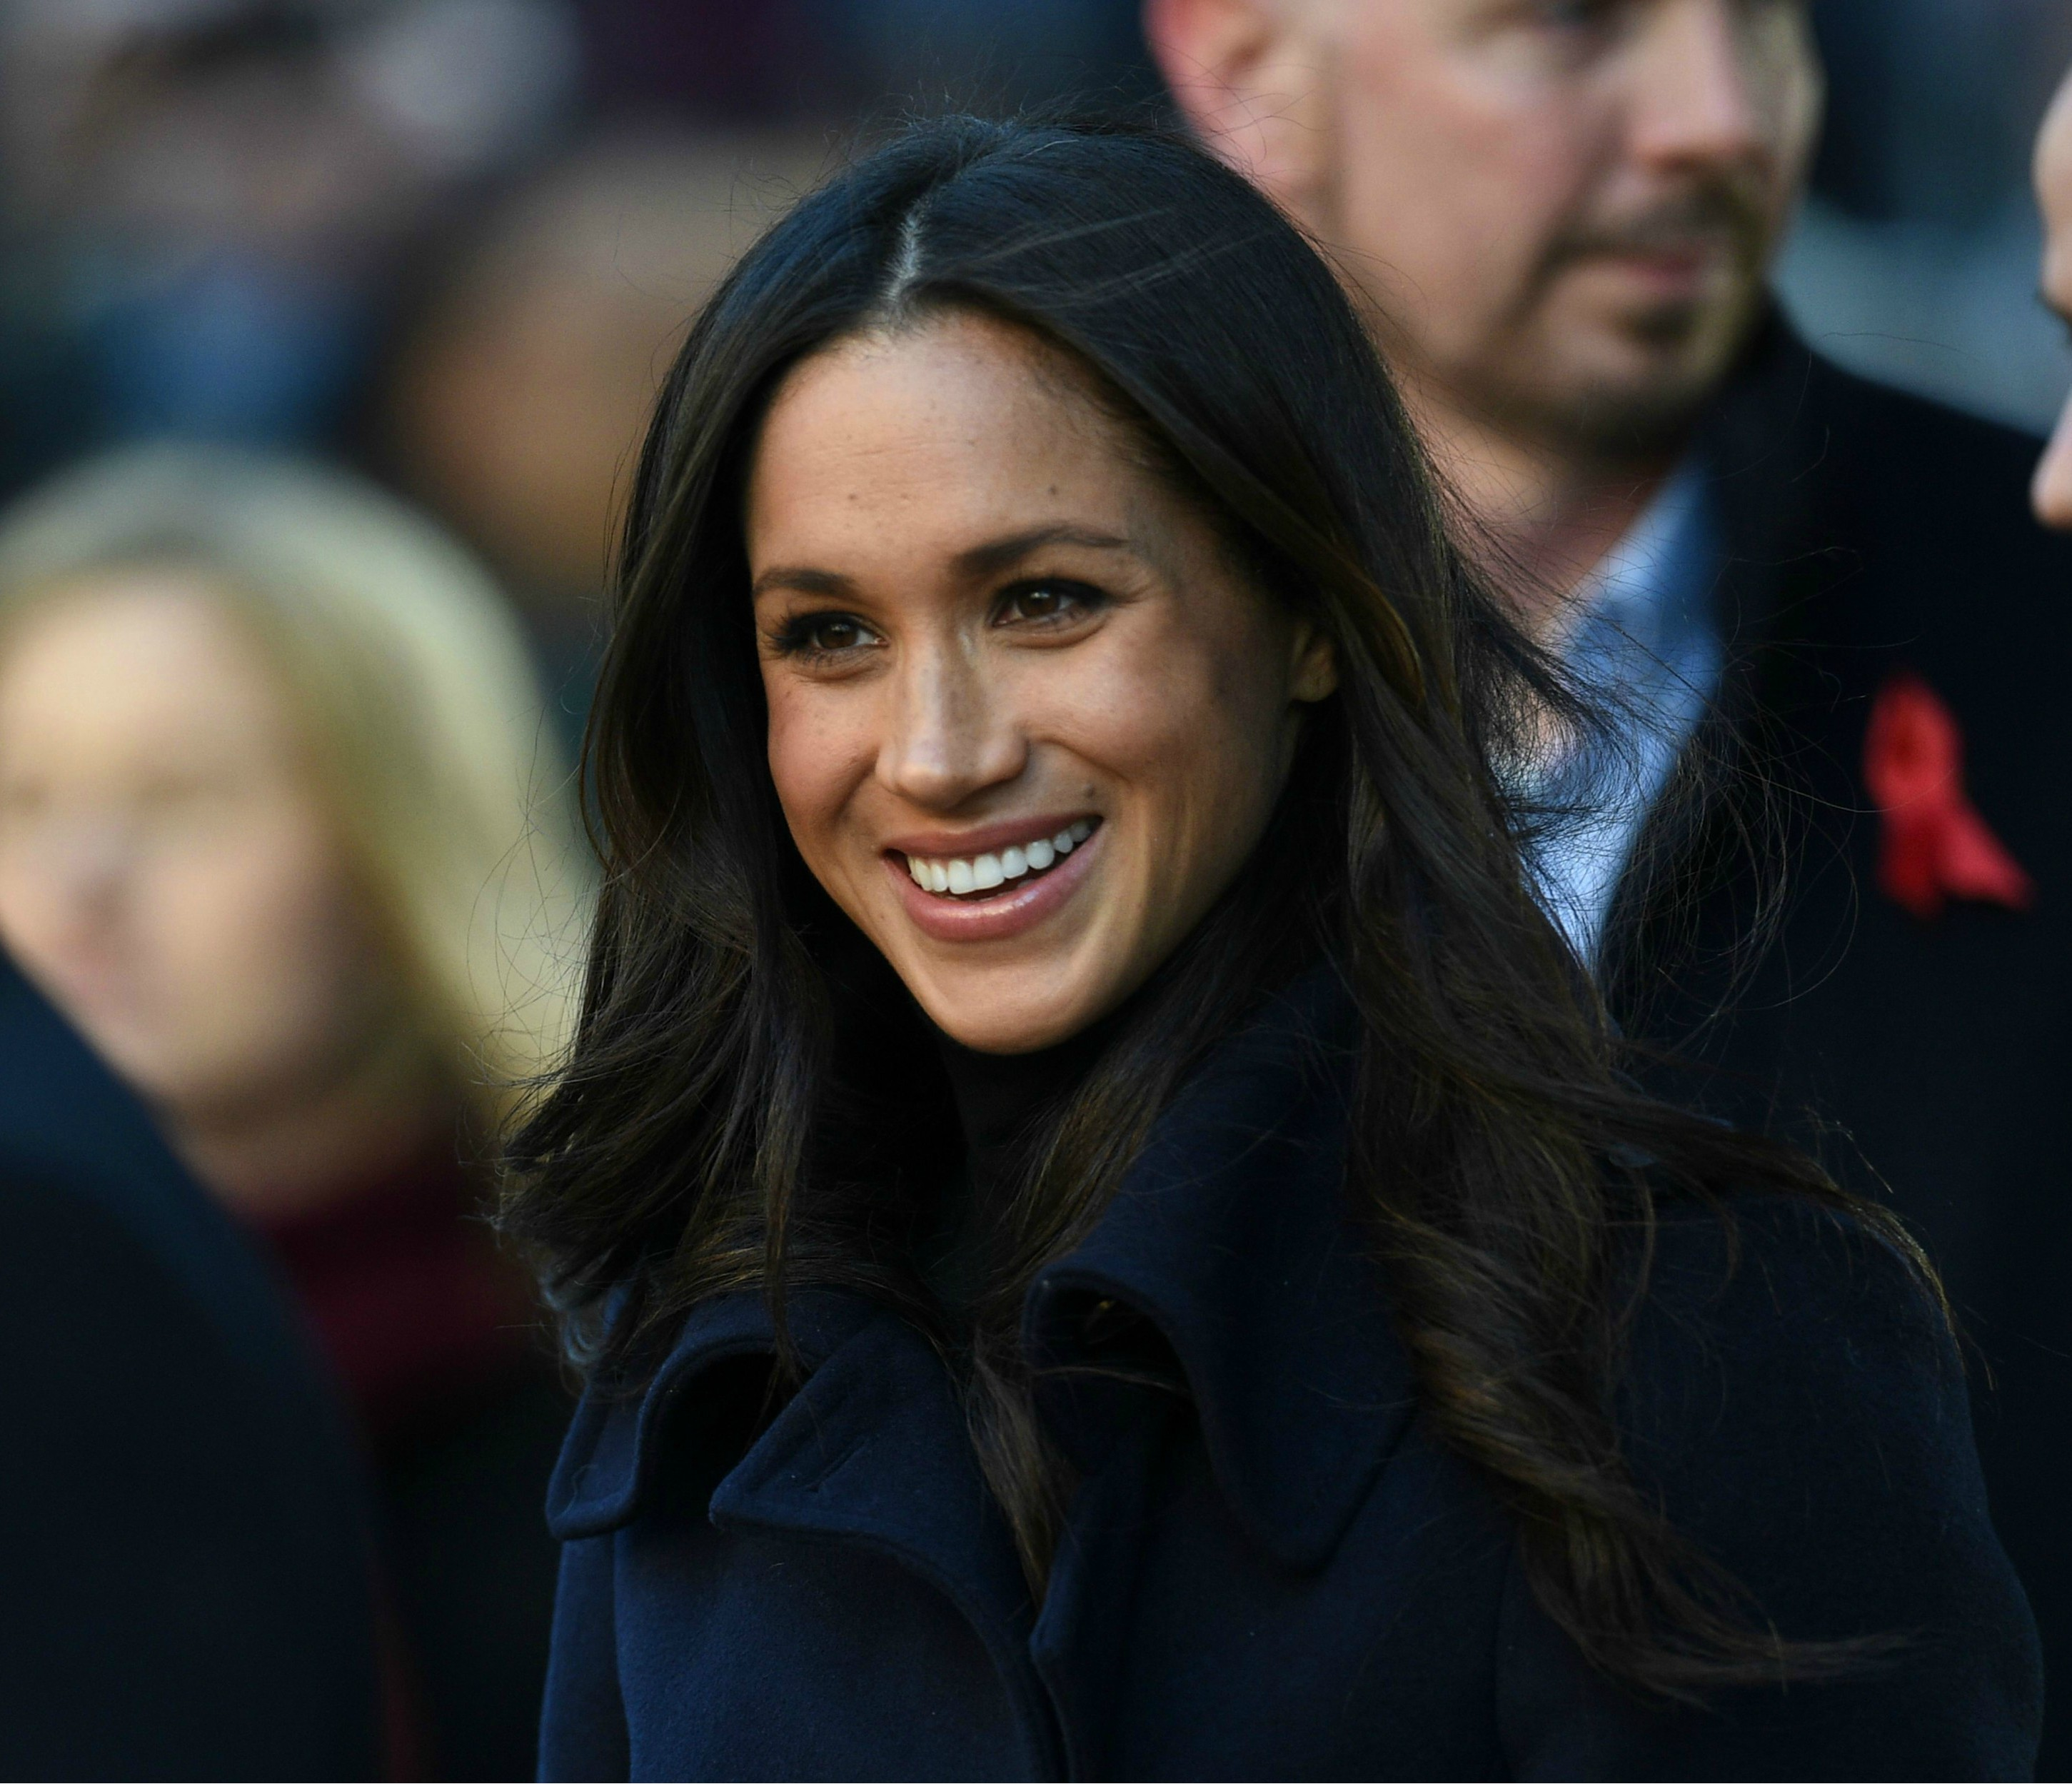 United Kingdom police probe 'racist' package sent to Prince Harry and Meghan Markle